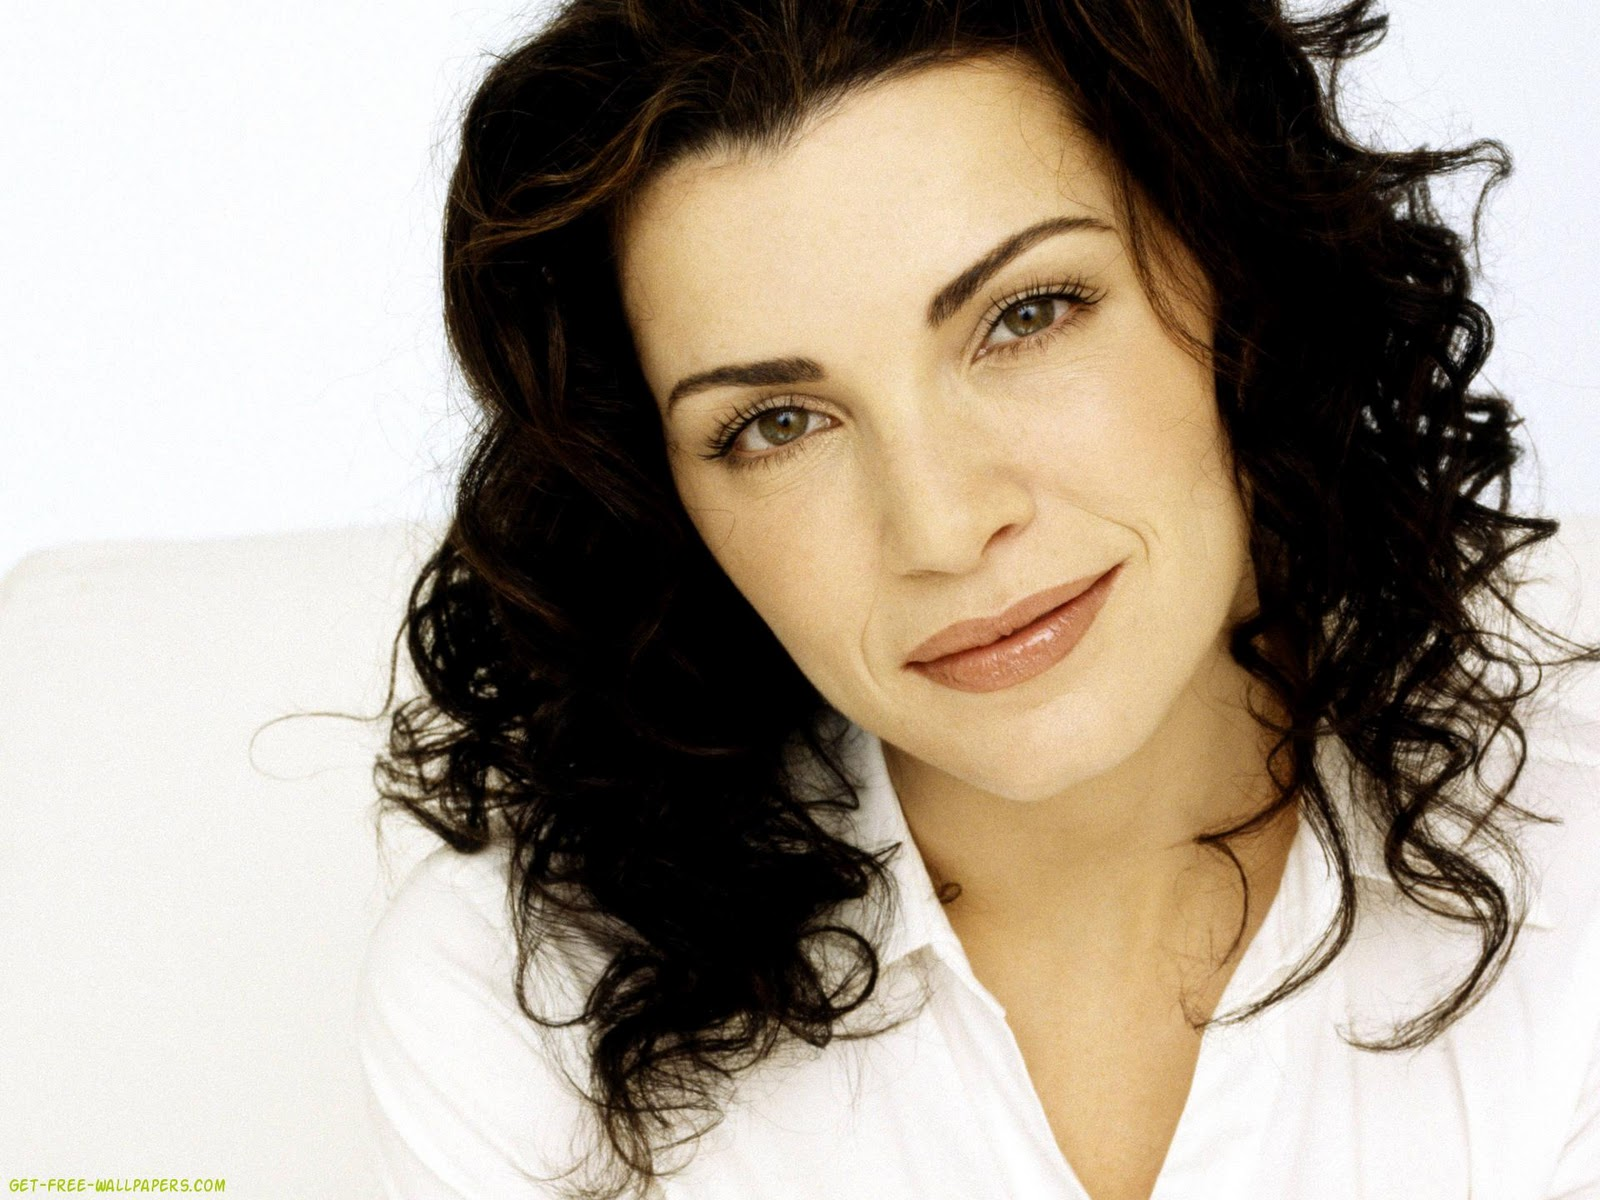 http://3.bp.blogspot.com/--zWpExHrWzw/TndrKRBiy1I/AAAAAAAAeio/hC1UPF2pS-k/s1600/julianna+margulies+wallpapers+2011+3.jpg